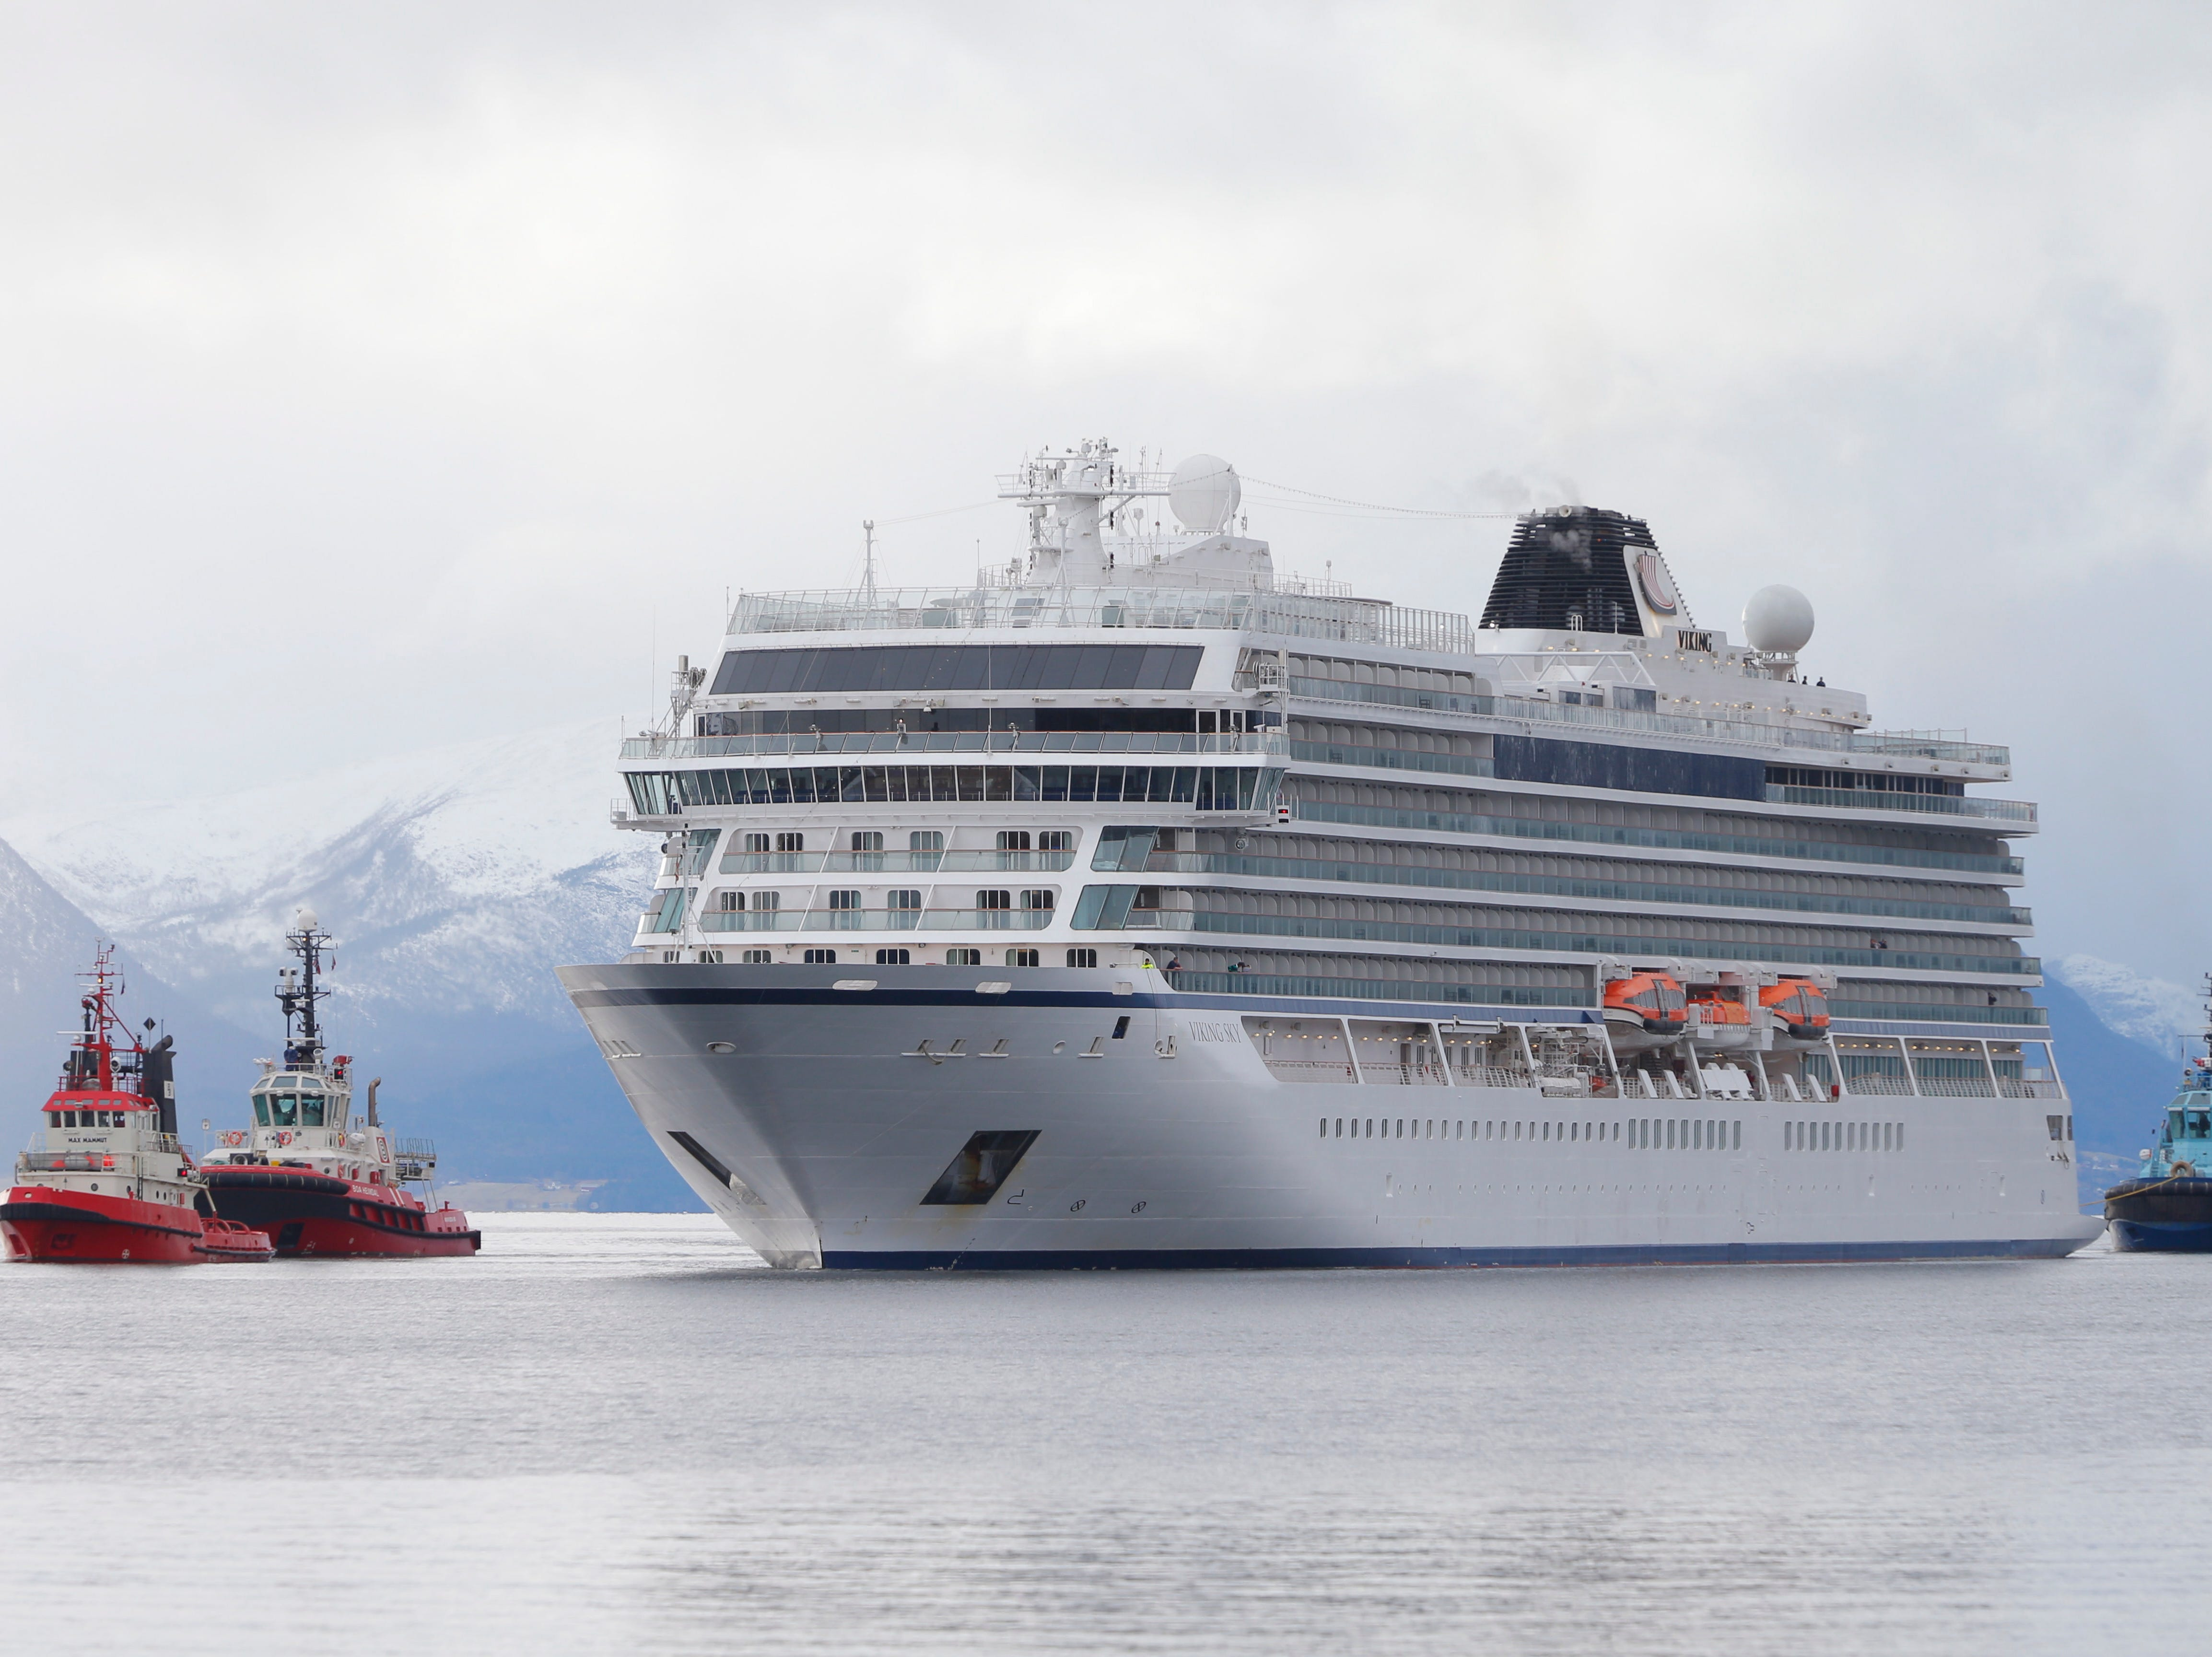 Escorted by tugboats, the Viking Sky arrives at Molde, Norway, on March 24, 2019. The cruise ship reported engine failure in windy conditions off the west coast of Norway on March 23.